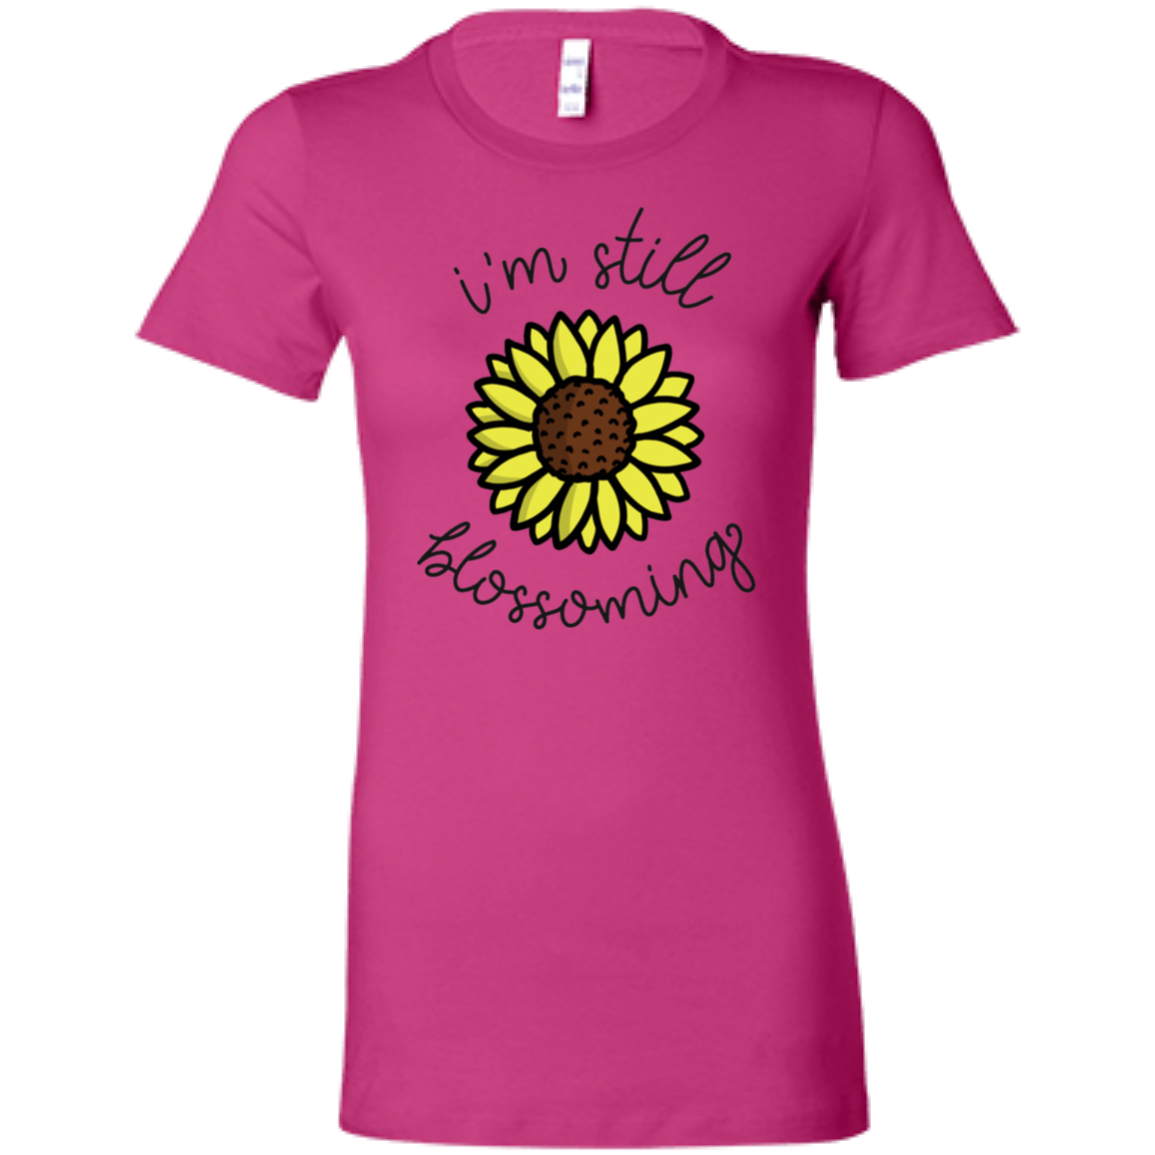 I'm Still Blossoming Slim Fit Women's T-Shirt